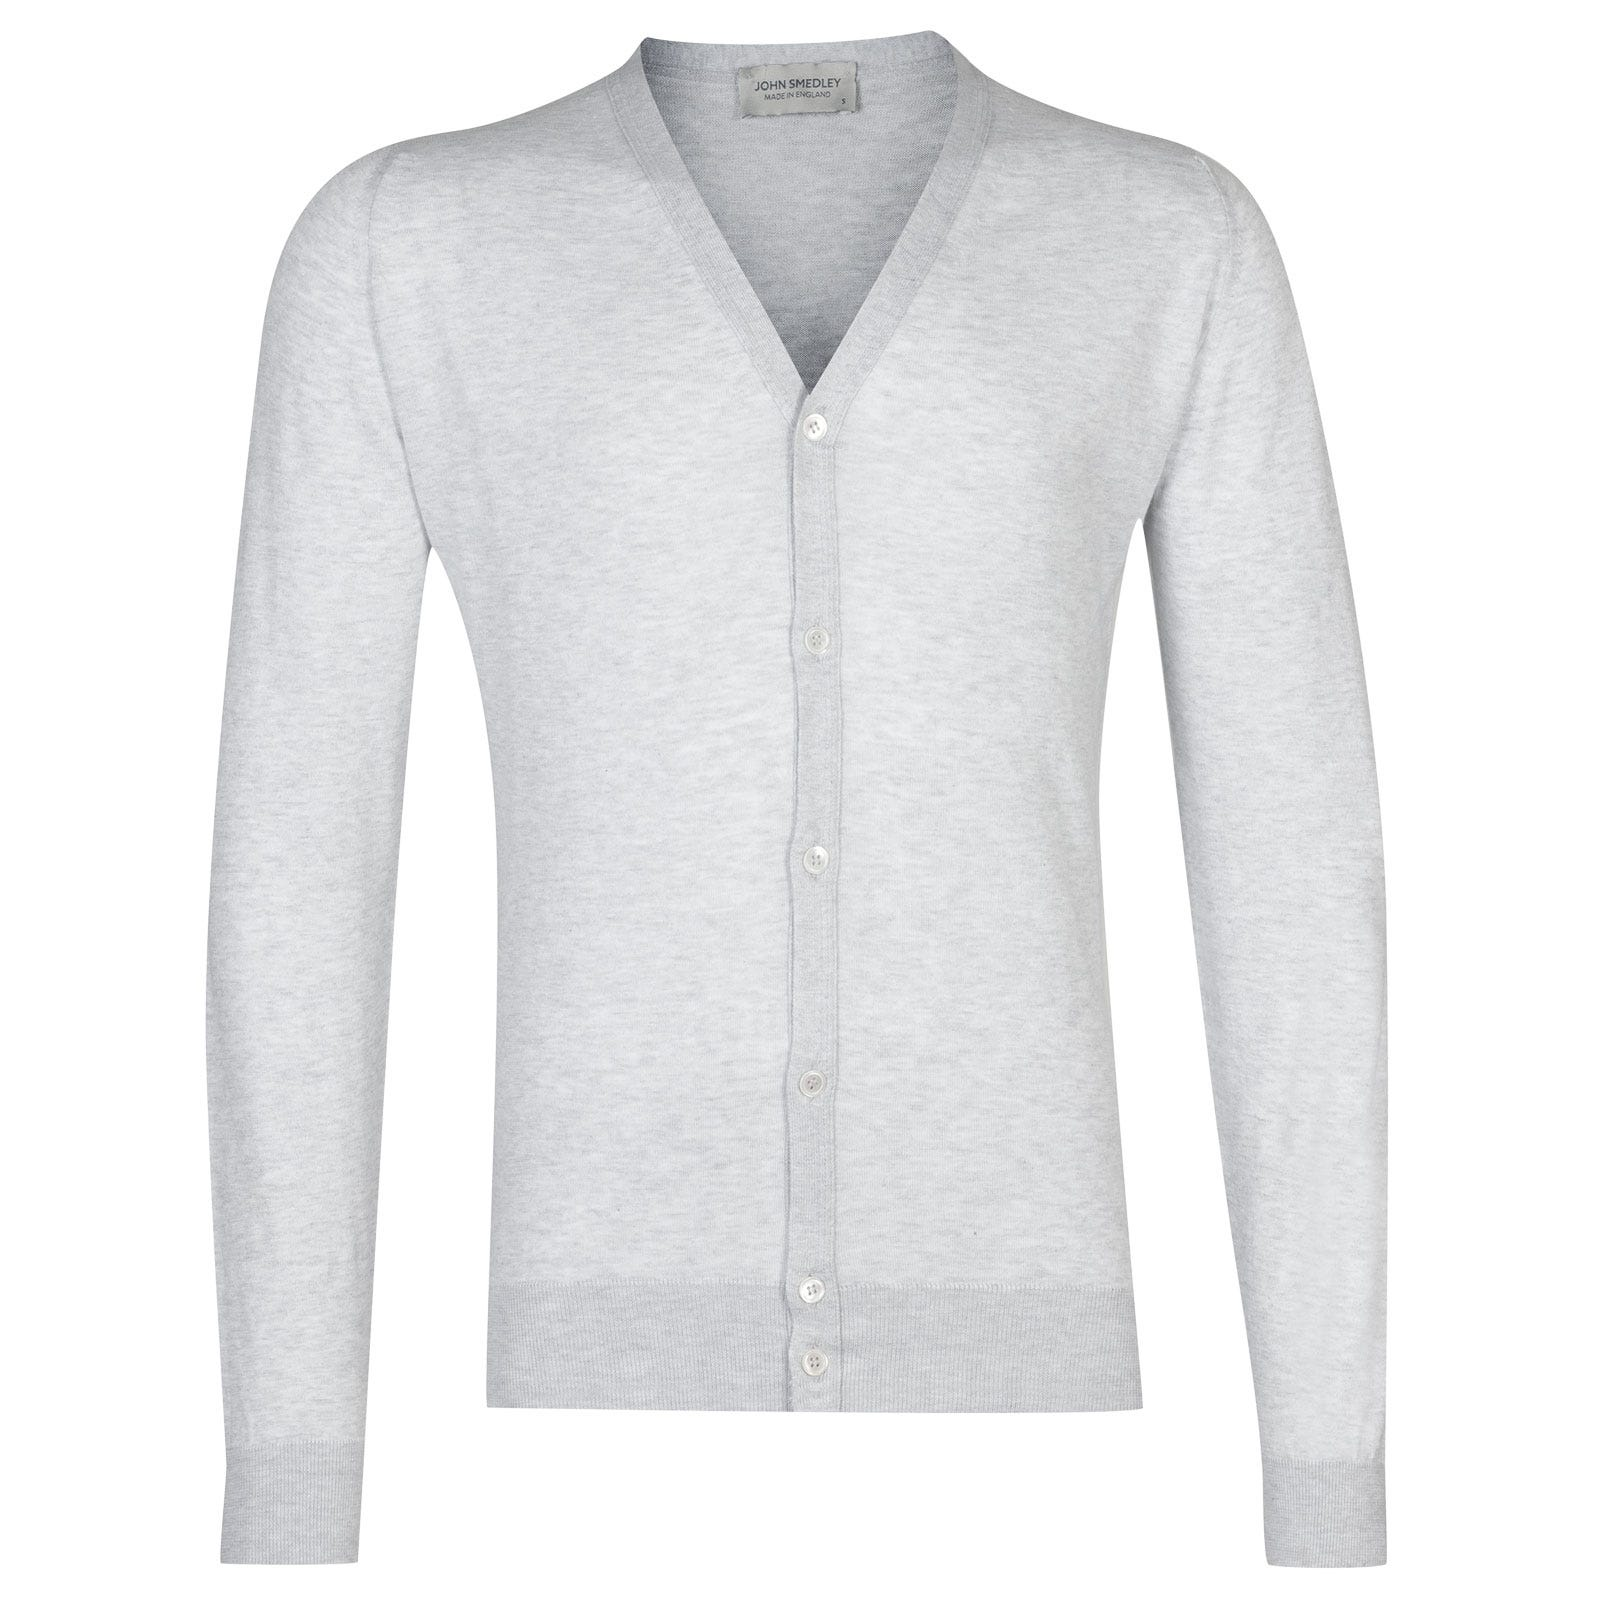 John Smedley whitchurch Sea Island Cotton Cardigan in Feather Grey-L